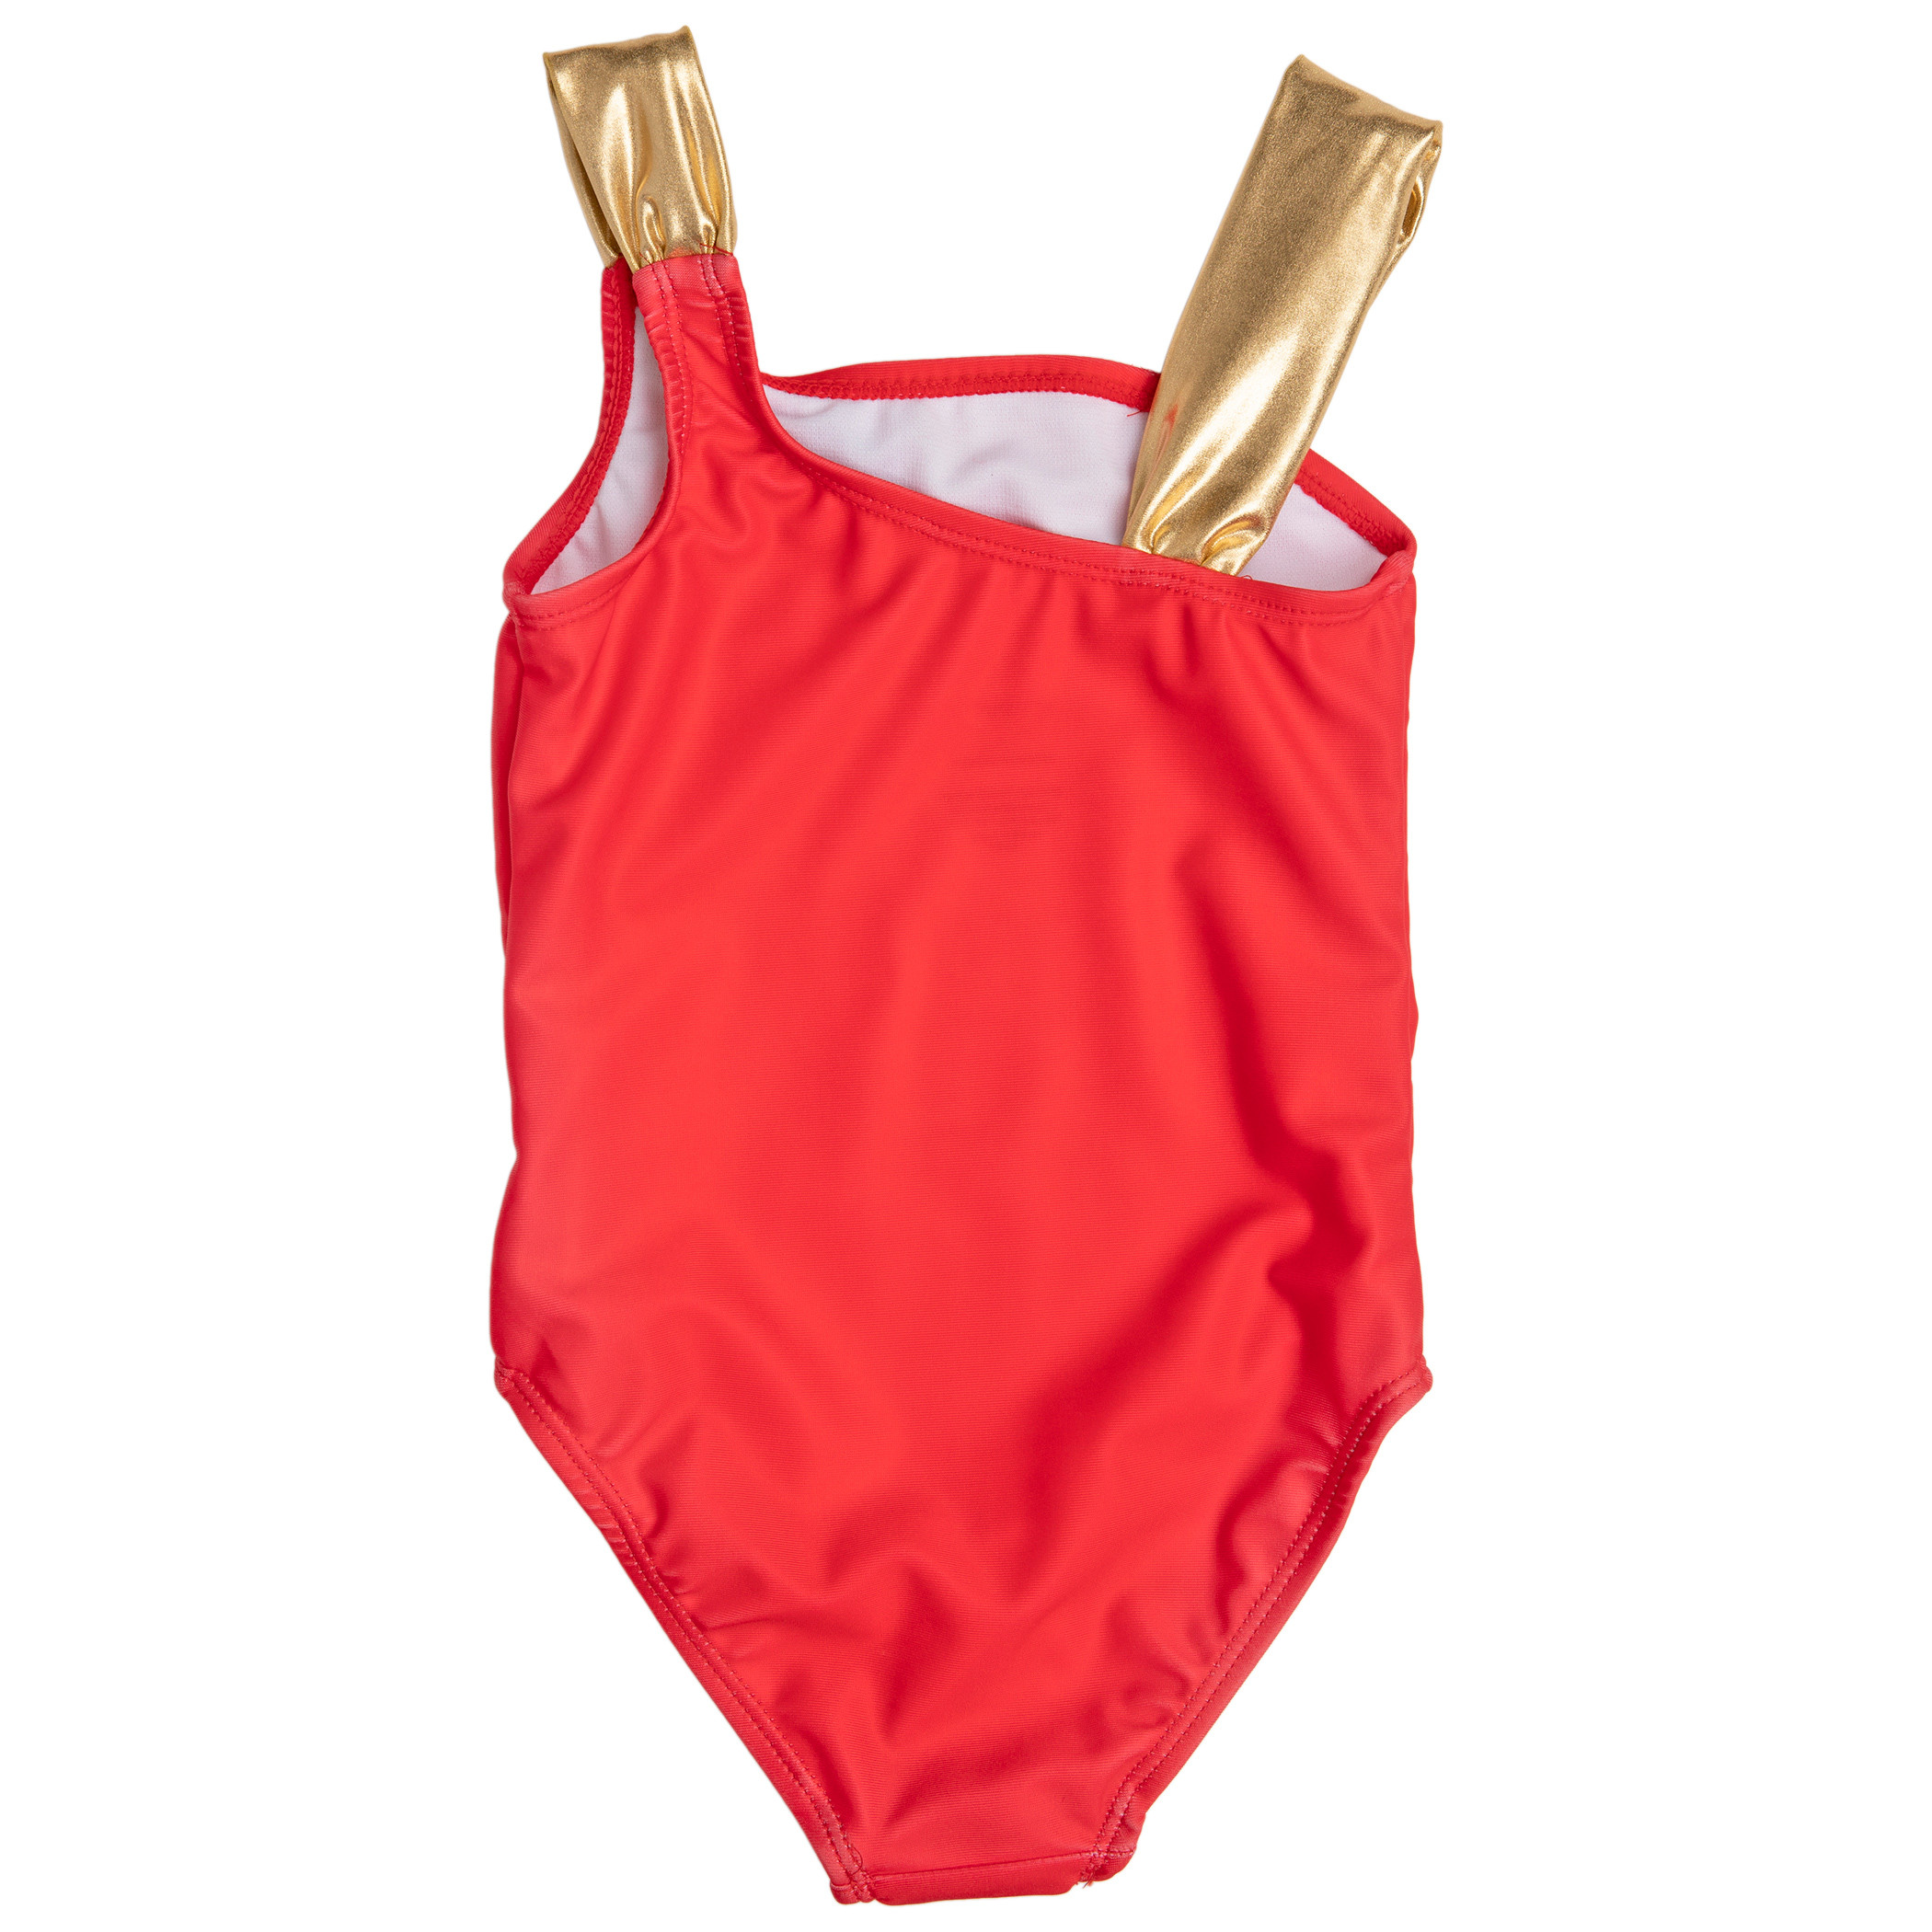 Wonder Woman Character Gold Foil One Piece Girls Toddler Swimsuit